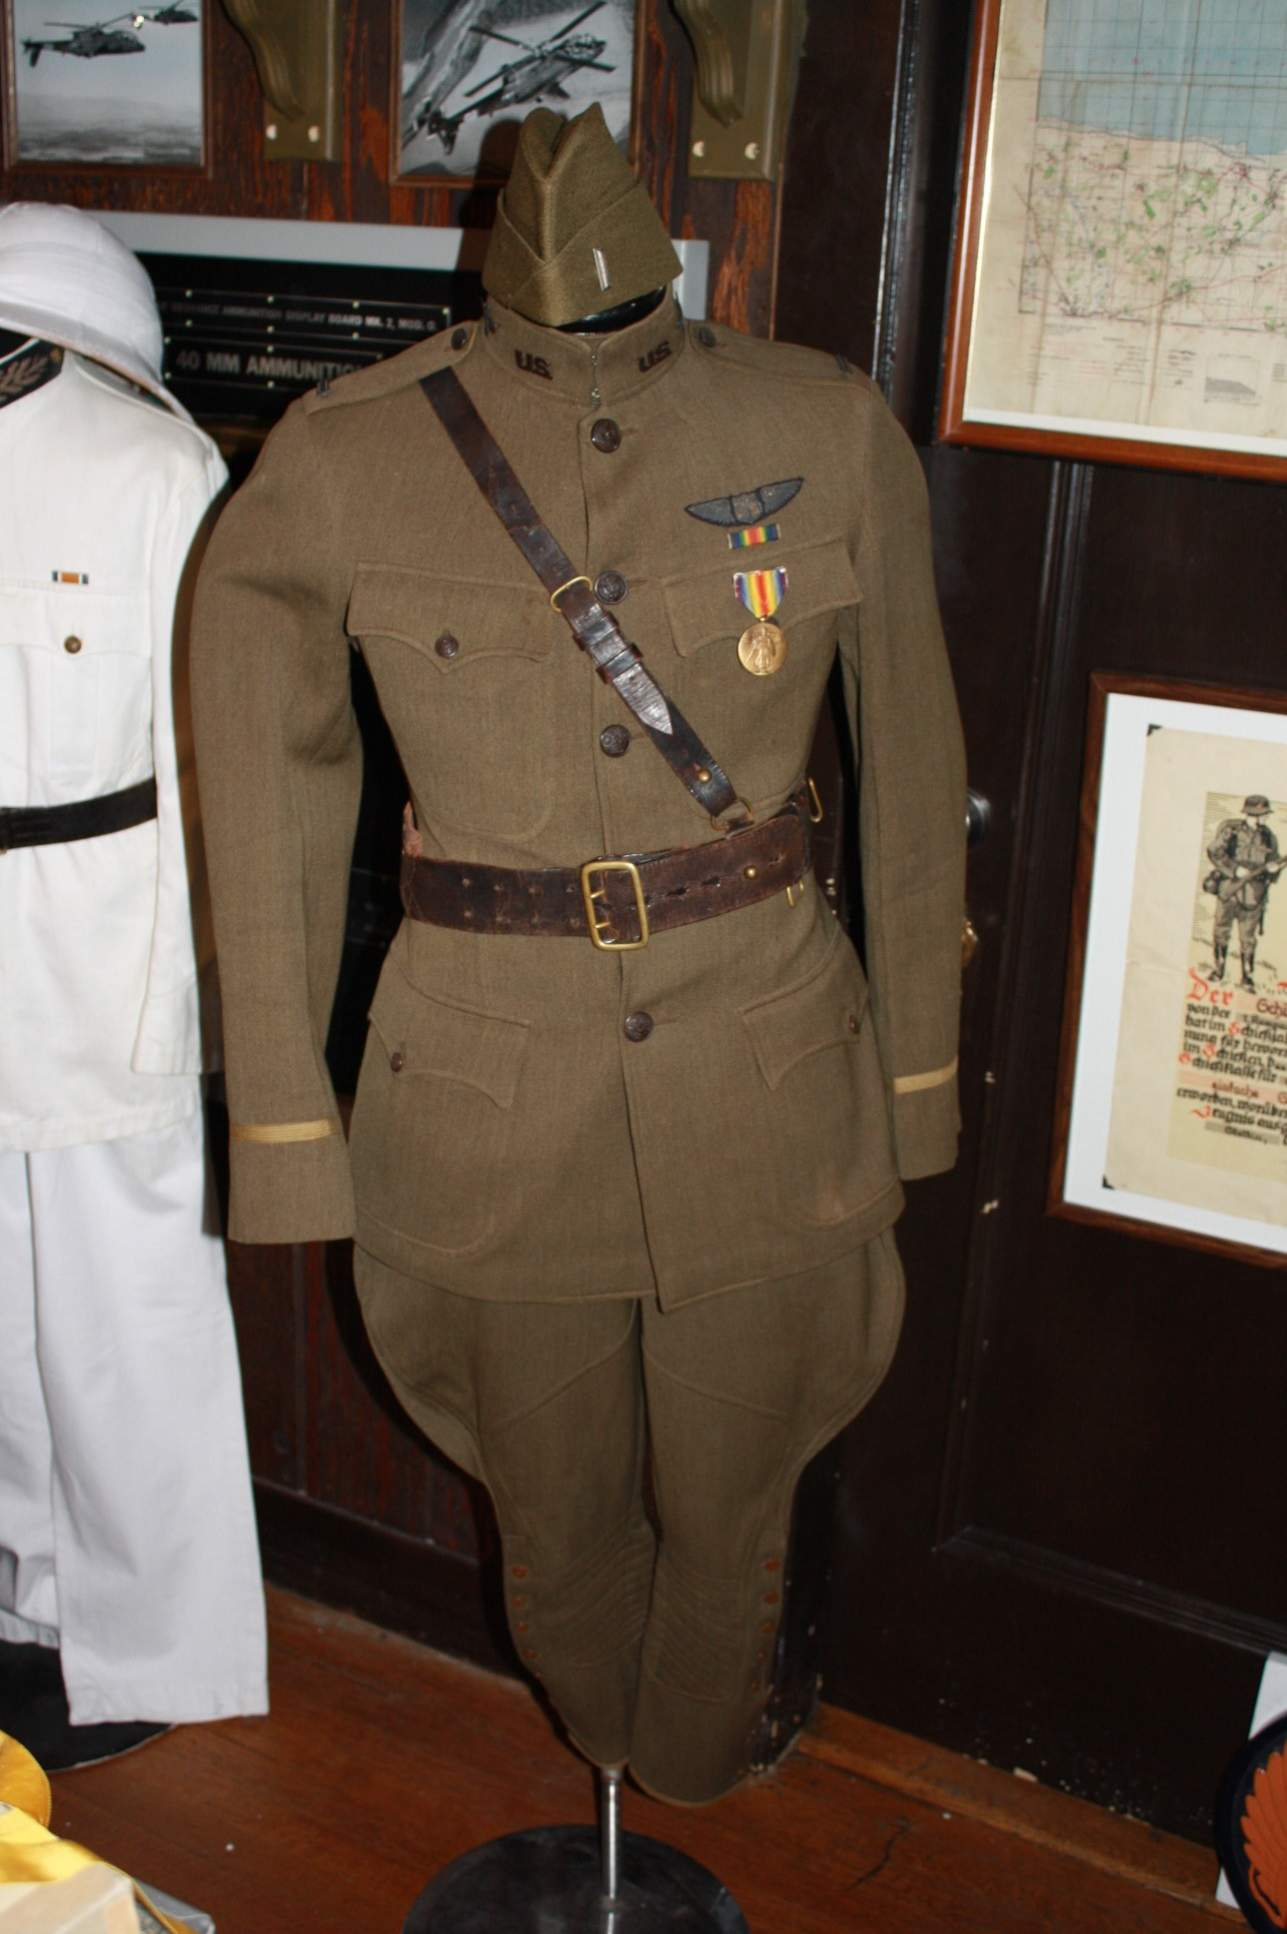 Lt Allens WWI uniform